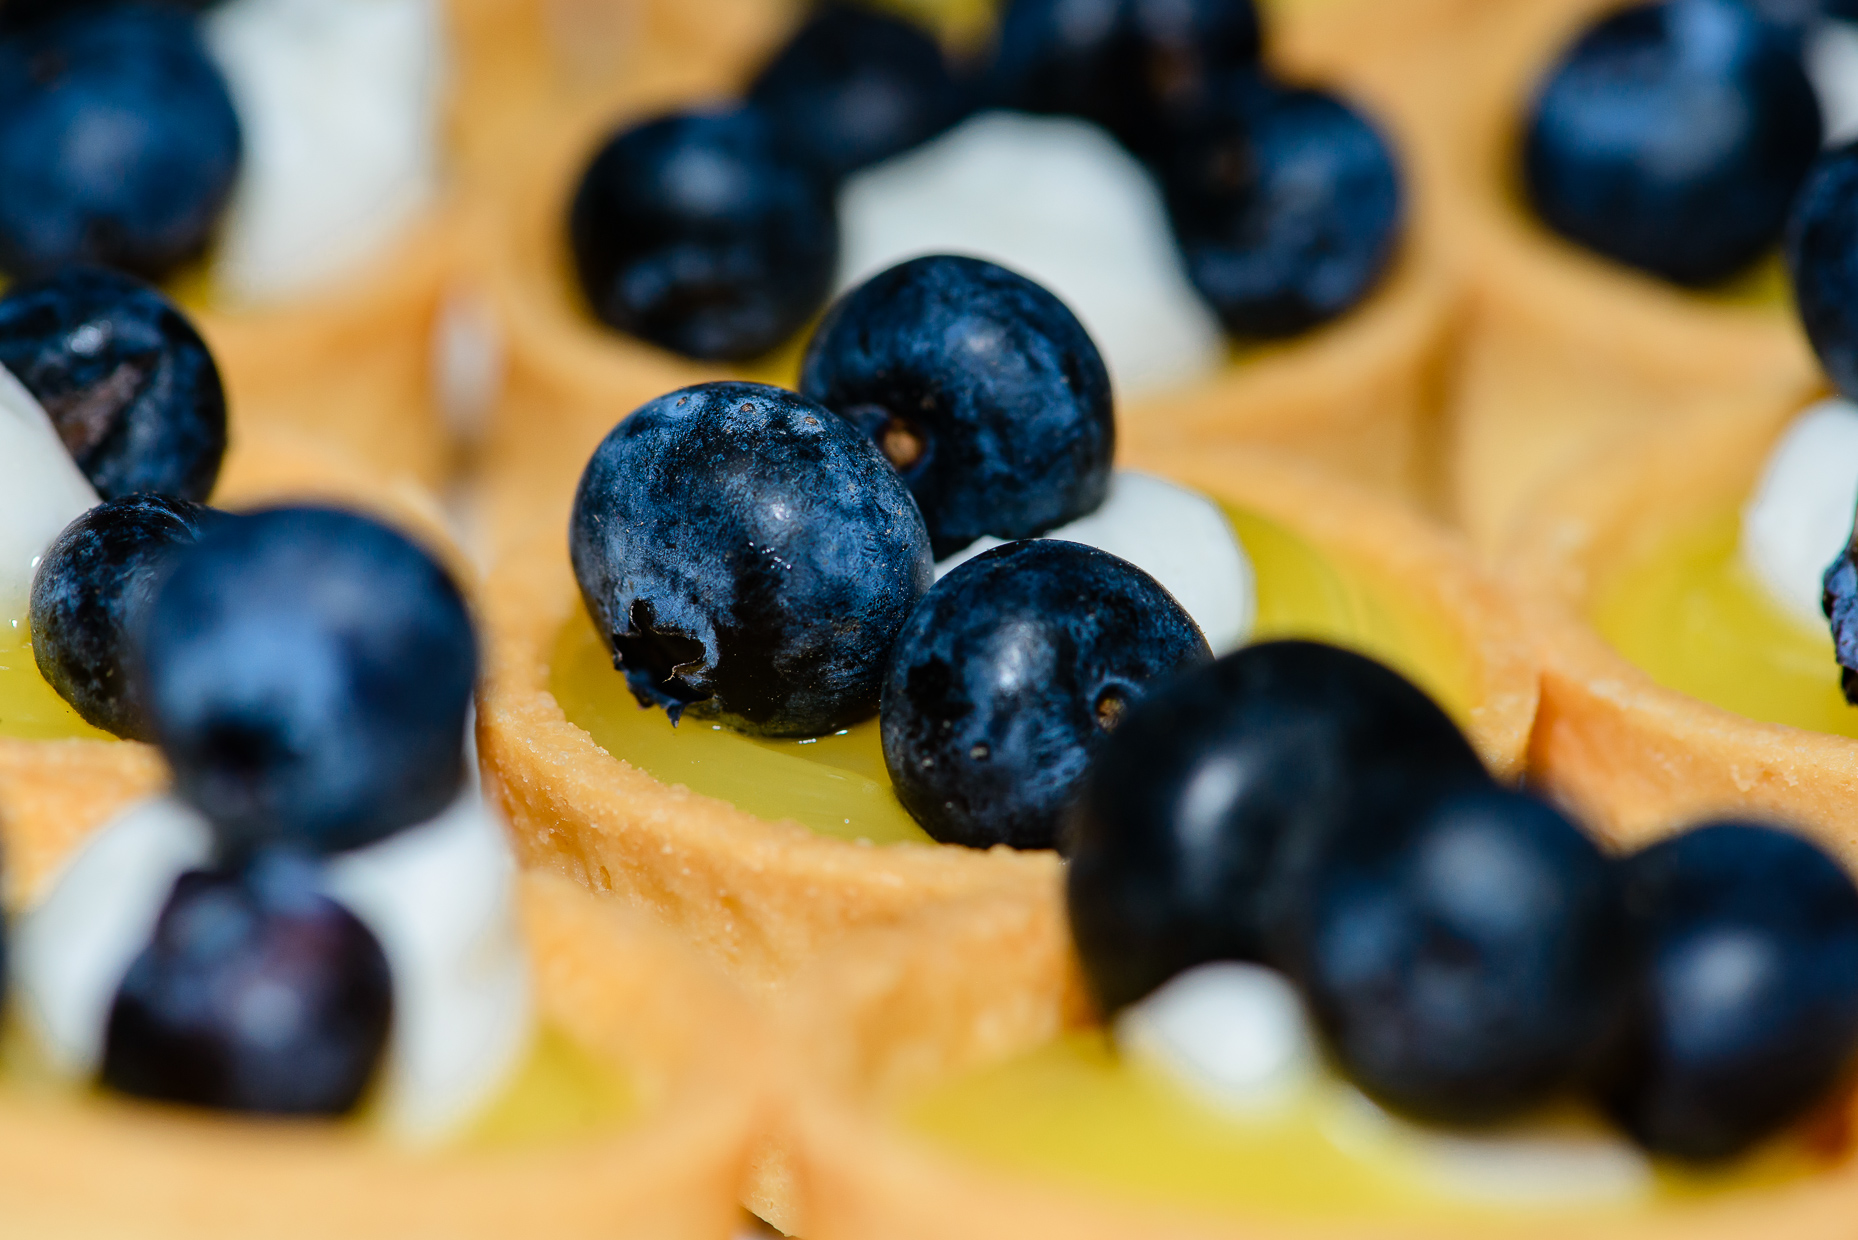 fruit-tart-details-blueberry-austin-wedding-photographer